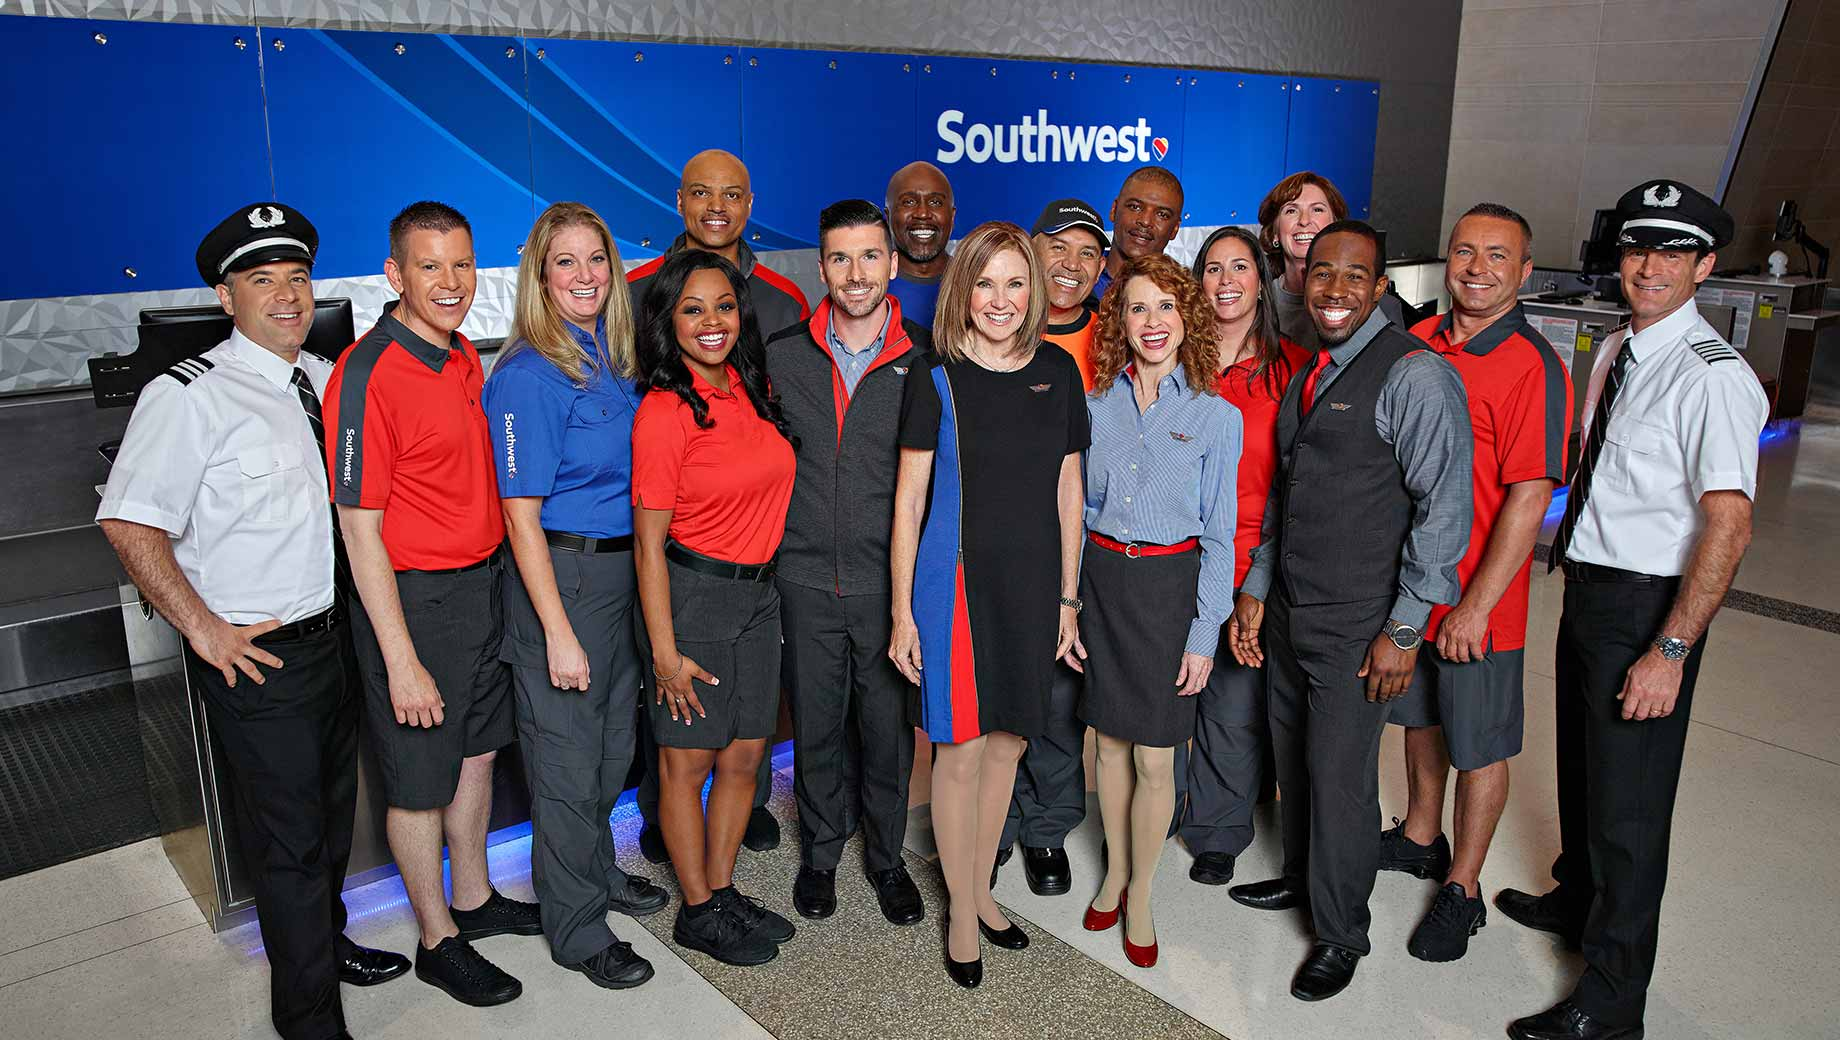 Southwest Airlines Employee Culture